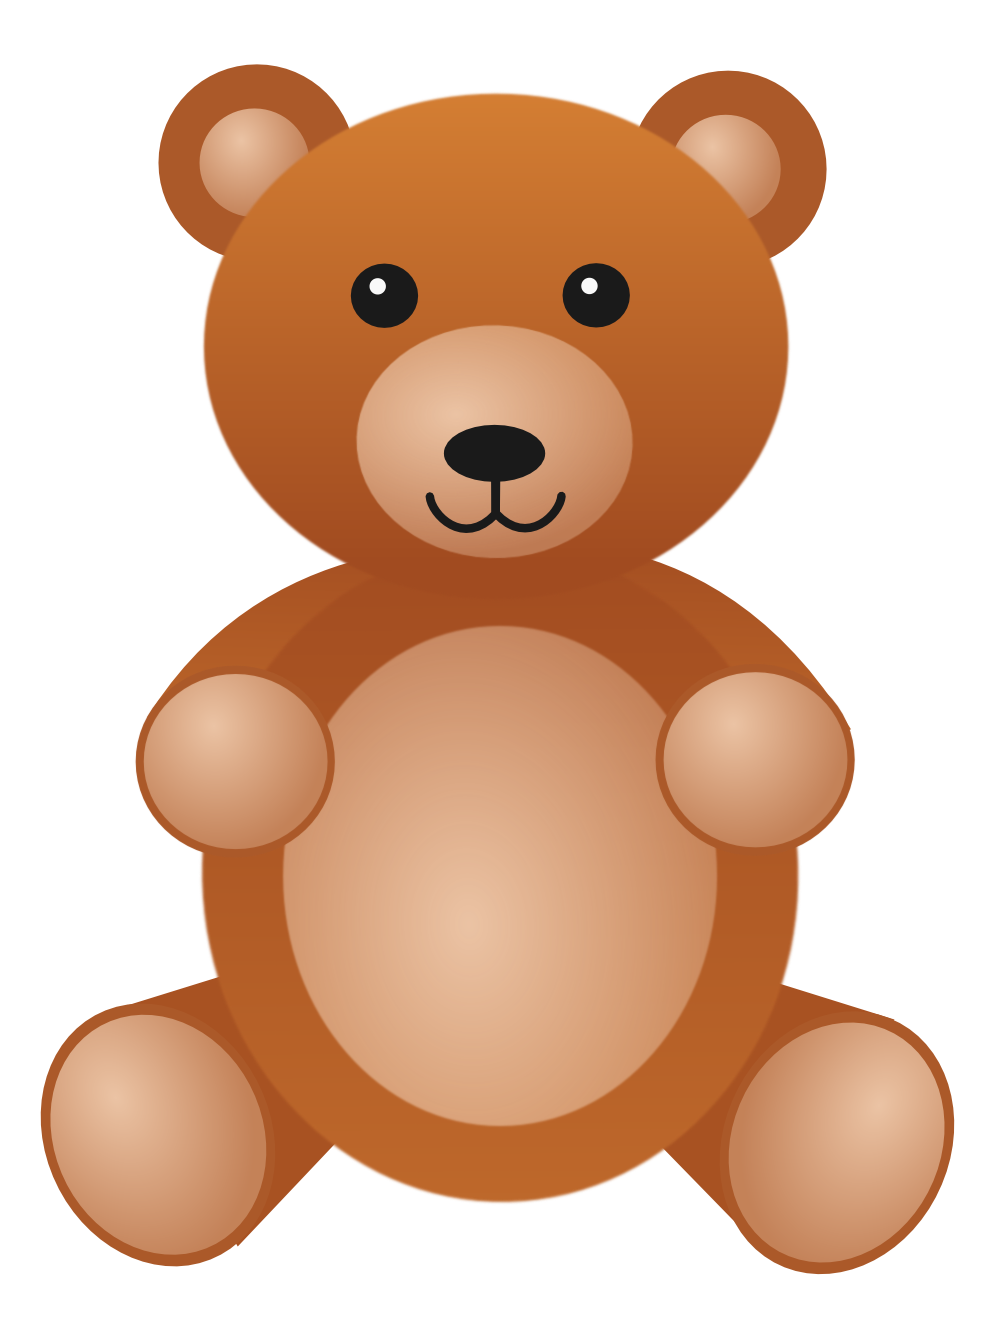 Teddy bear clipart png. Images best free icons